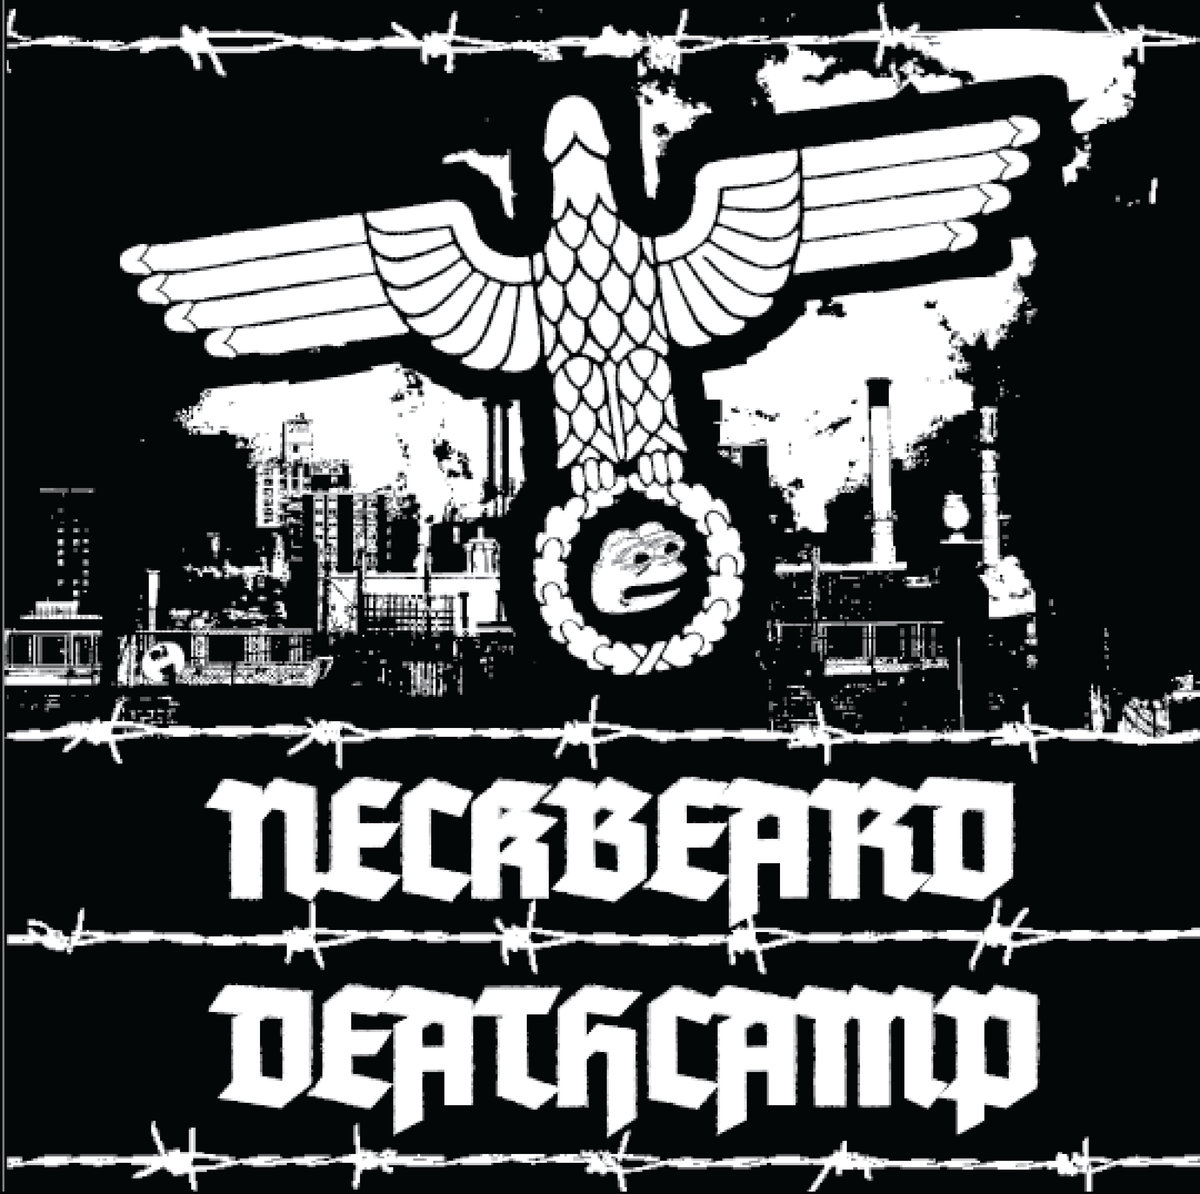 Neckbeard Deathcamp - White Nationalism Is For Basement Dwelling Losers LP